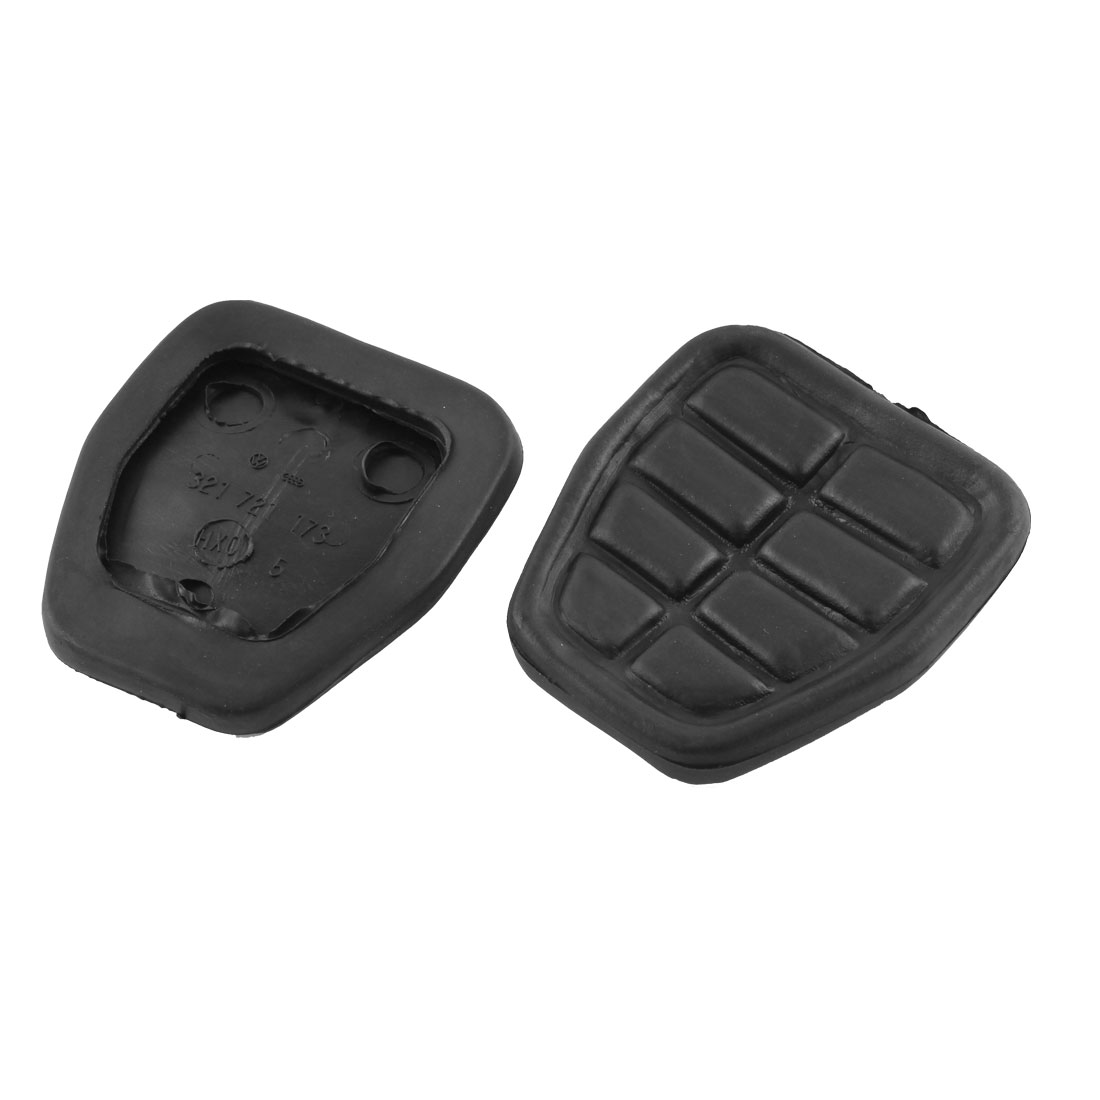 2Pcs Brake Pedal Rubber Black for Volkswagen 321 721 173